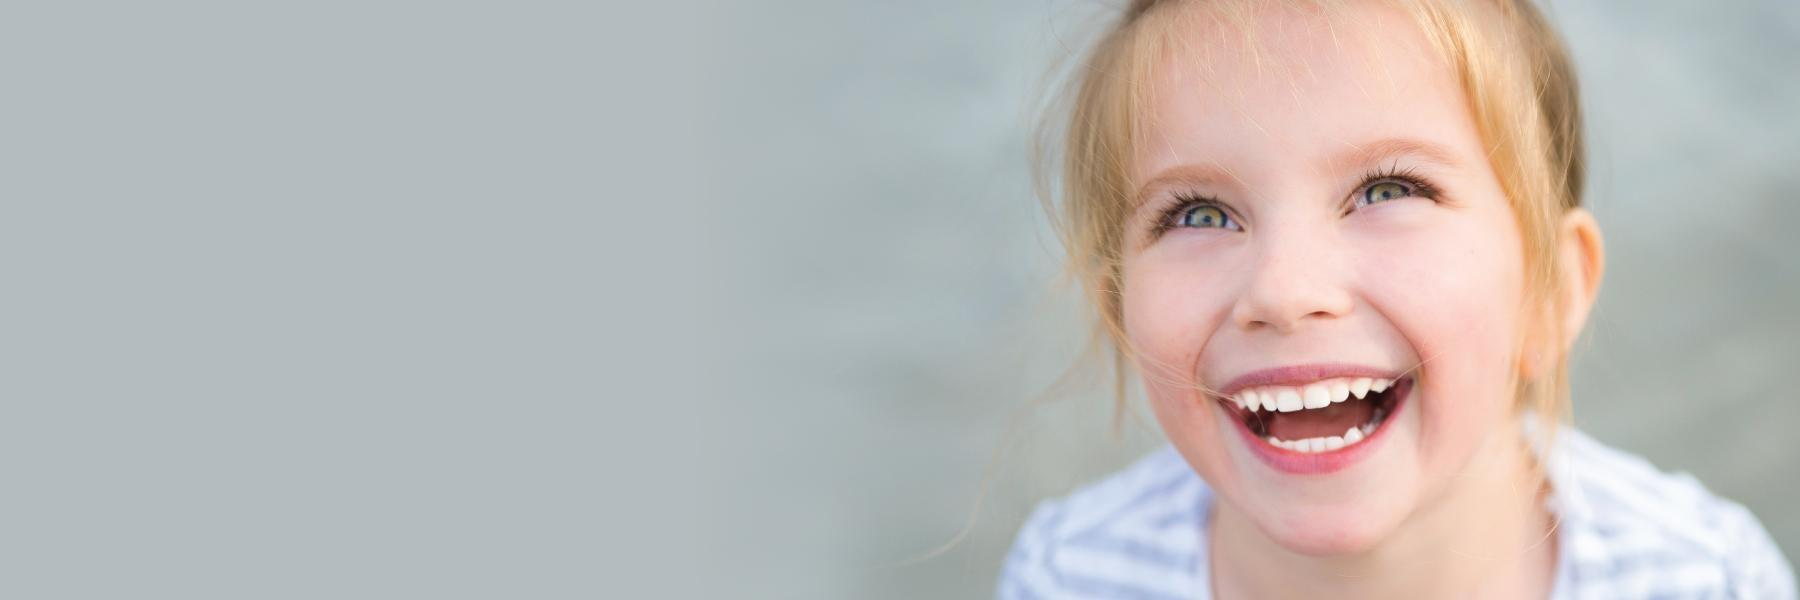 Preventive Care for Children | Dentist